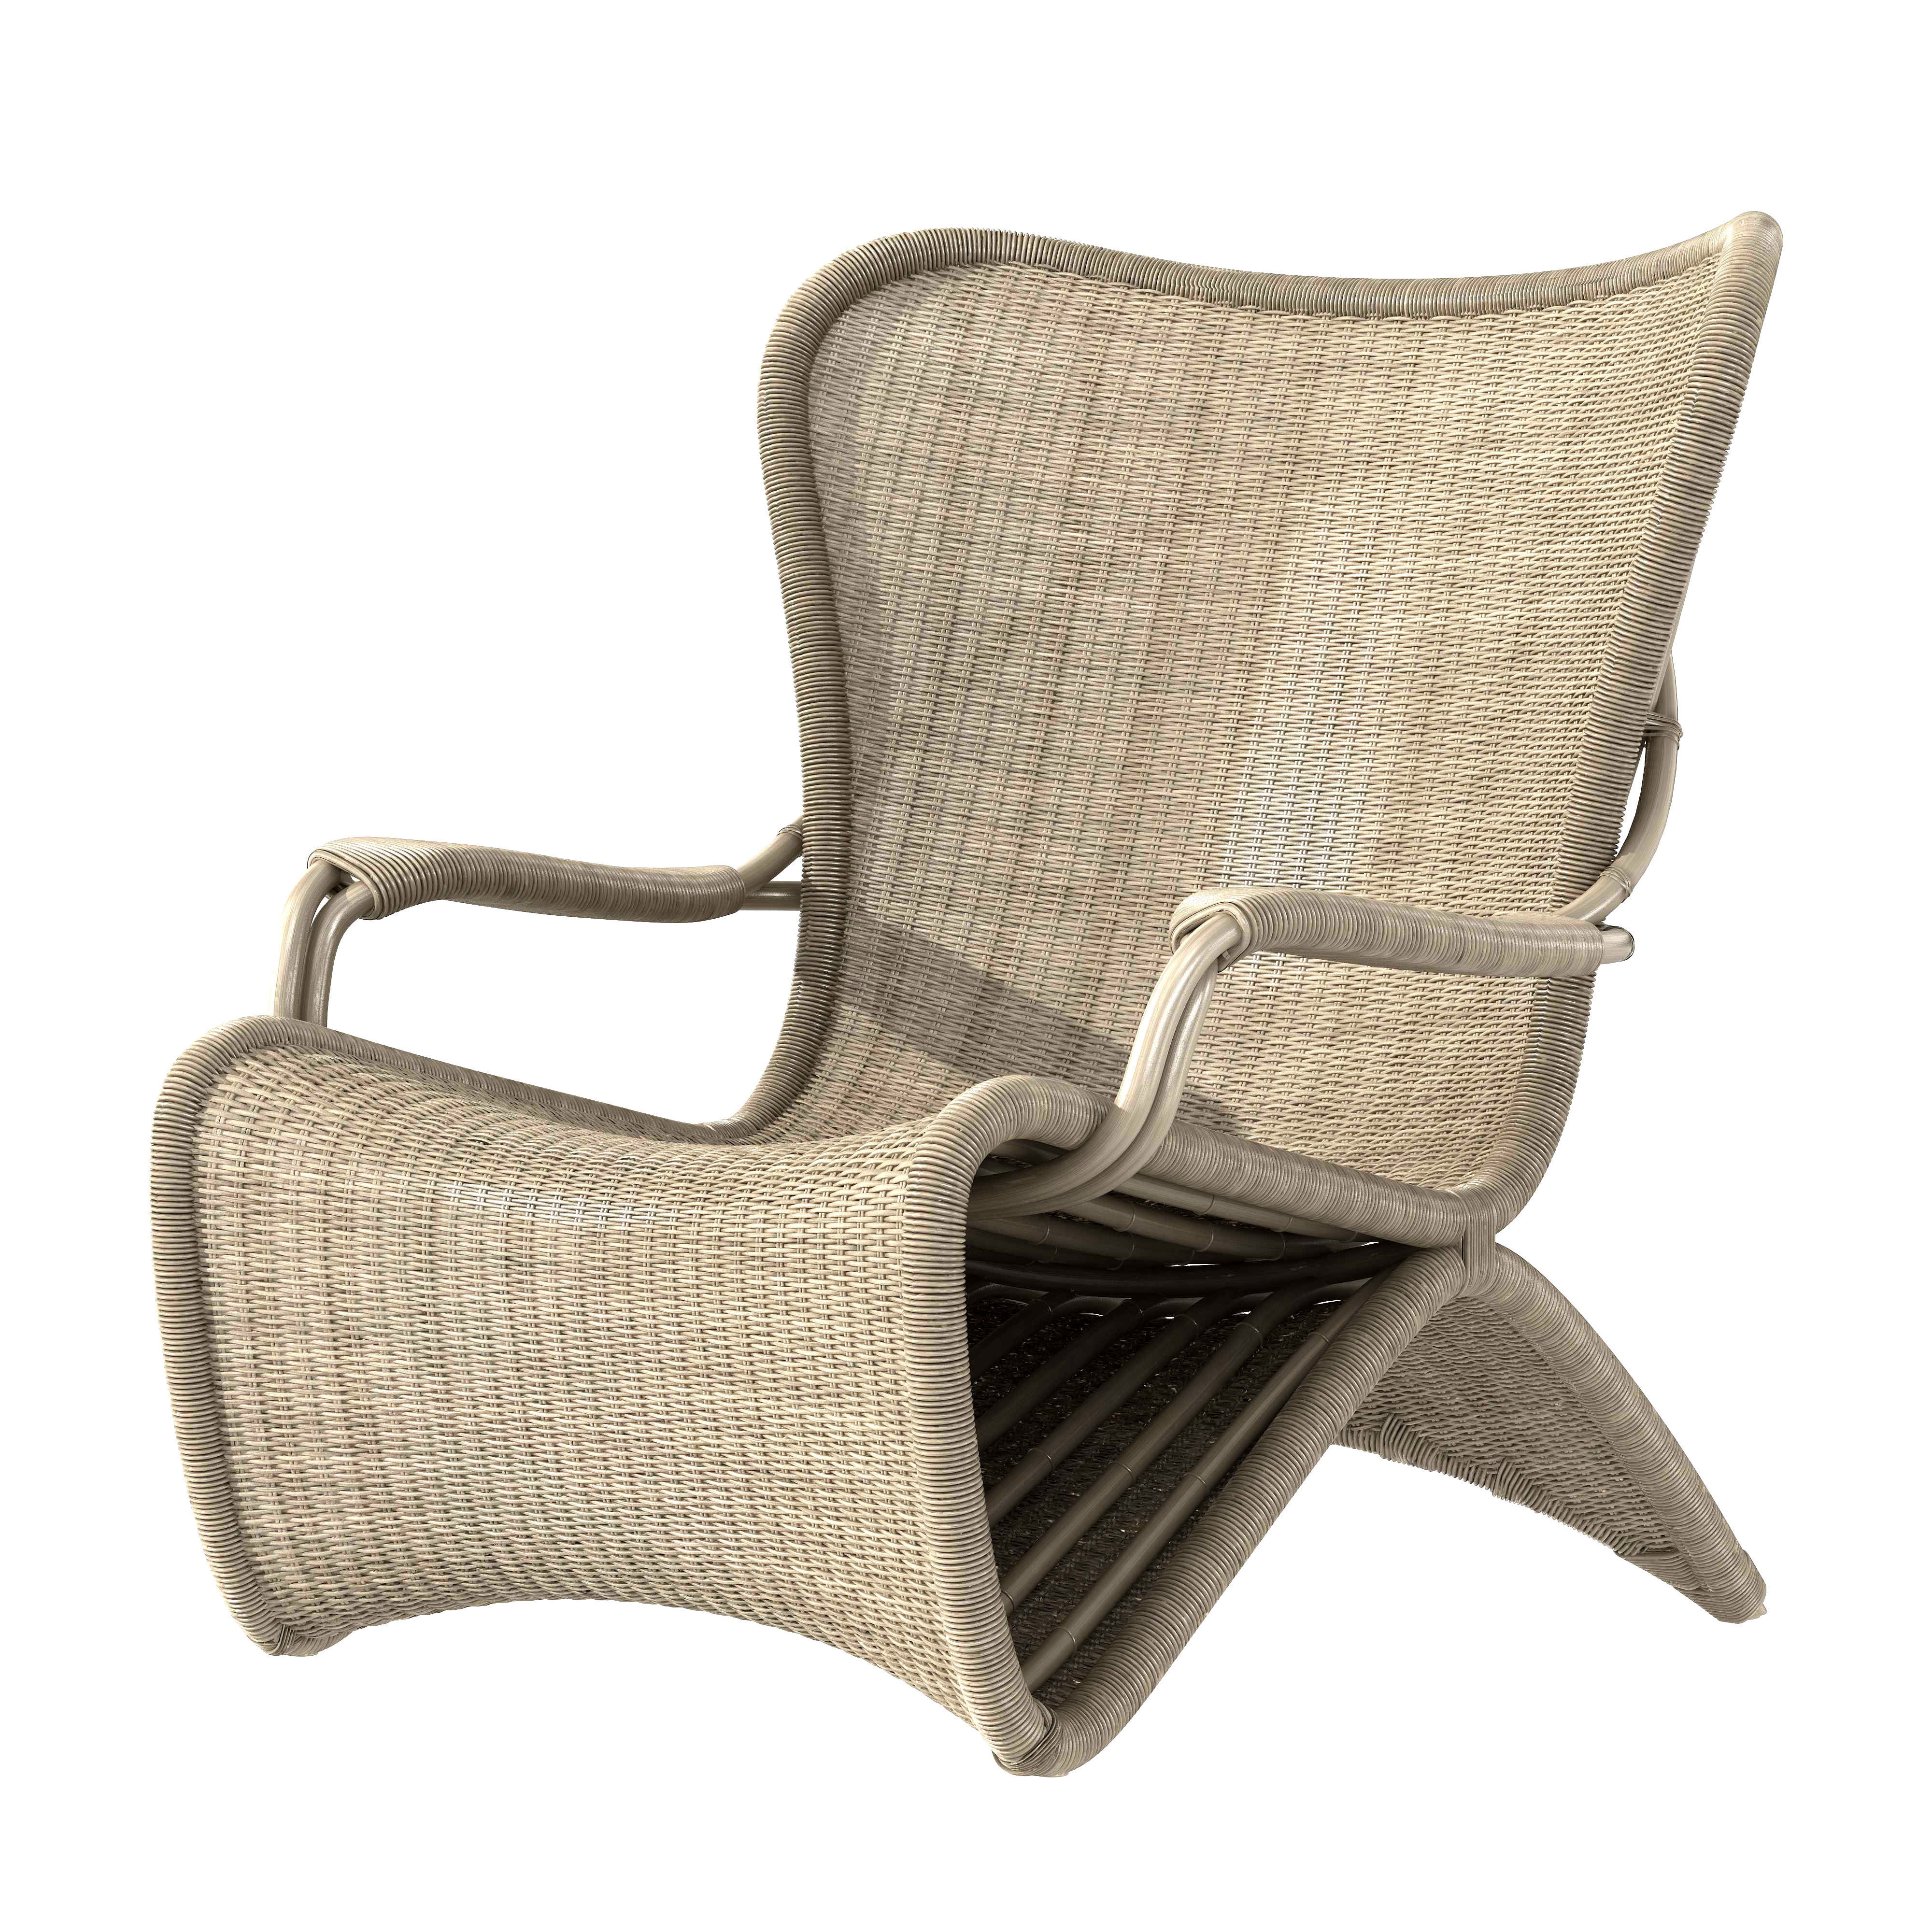 Restoration hardware PALMERIA LOUNGE CHAIR